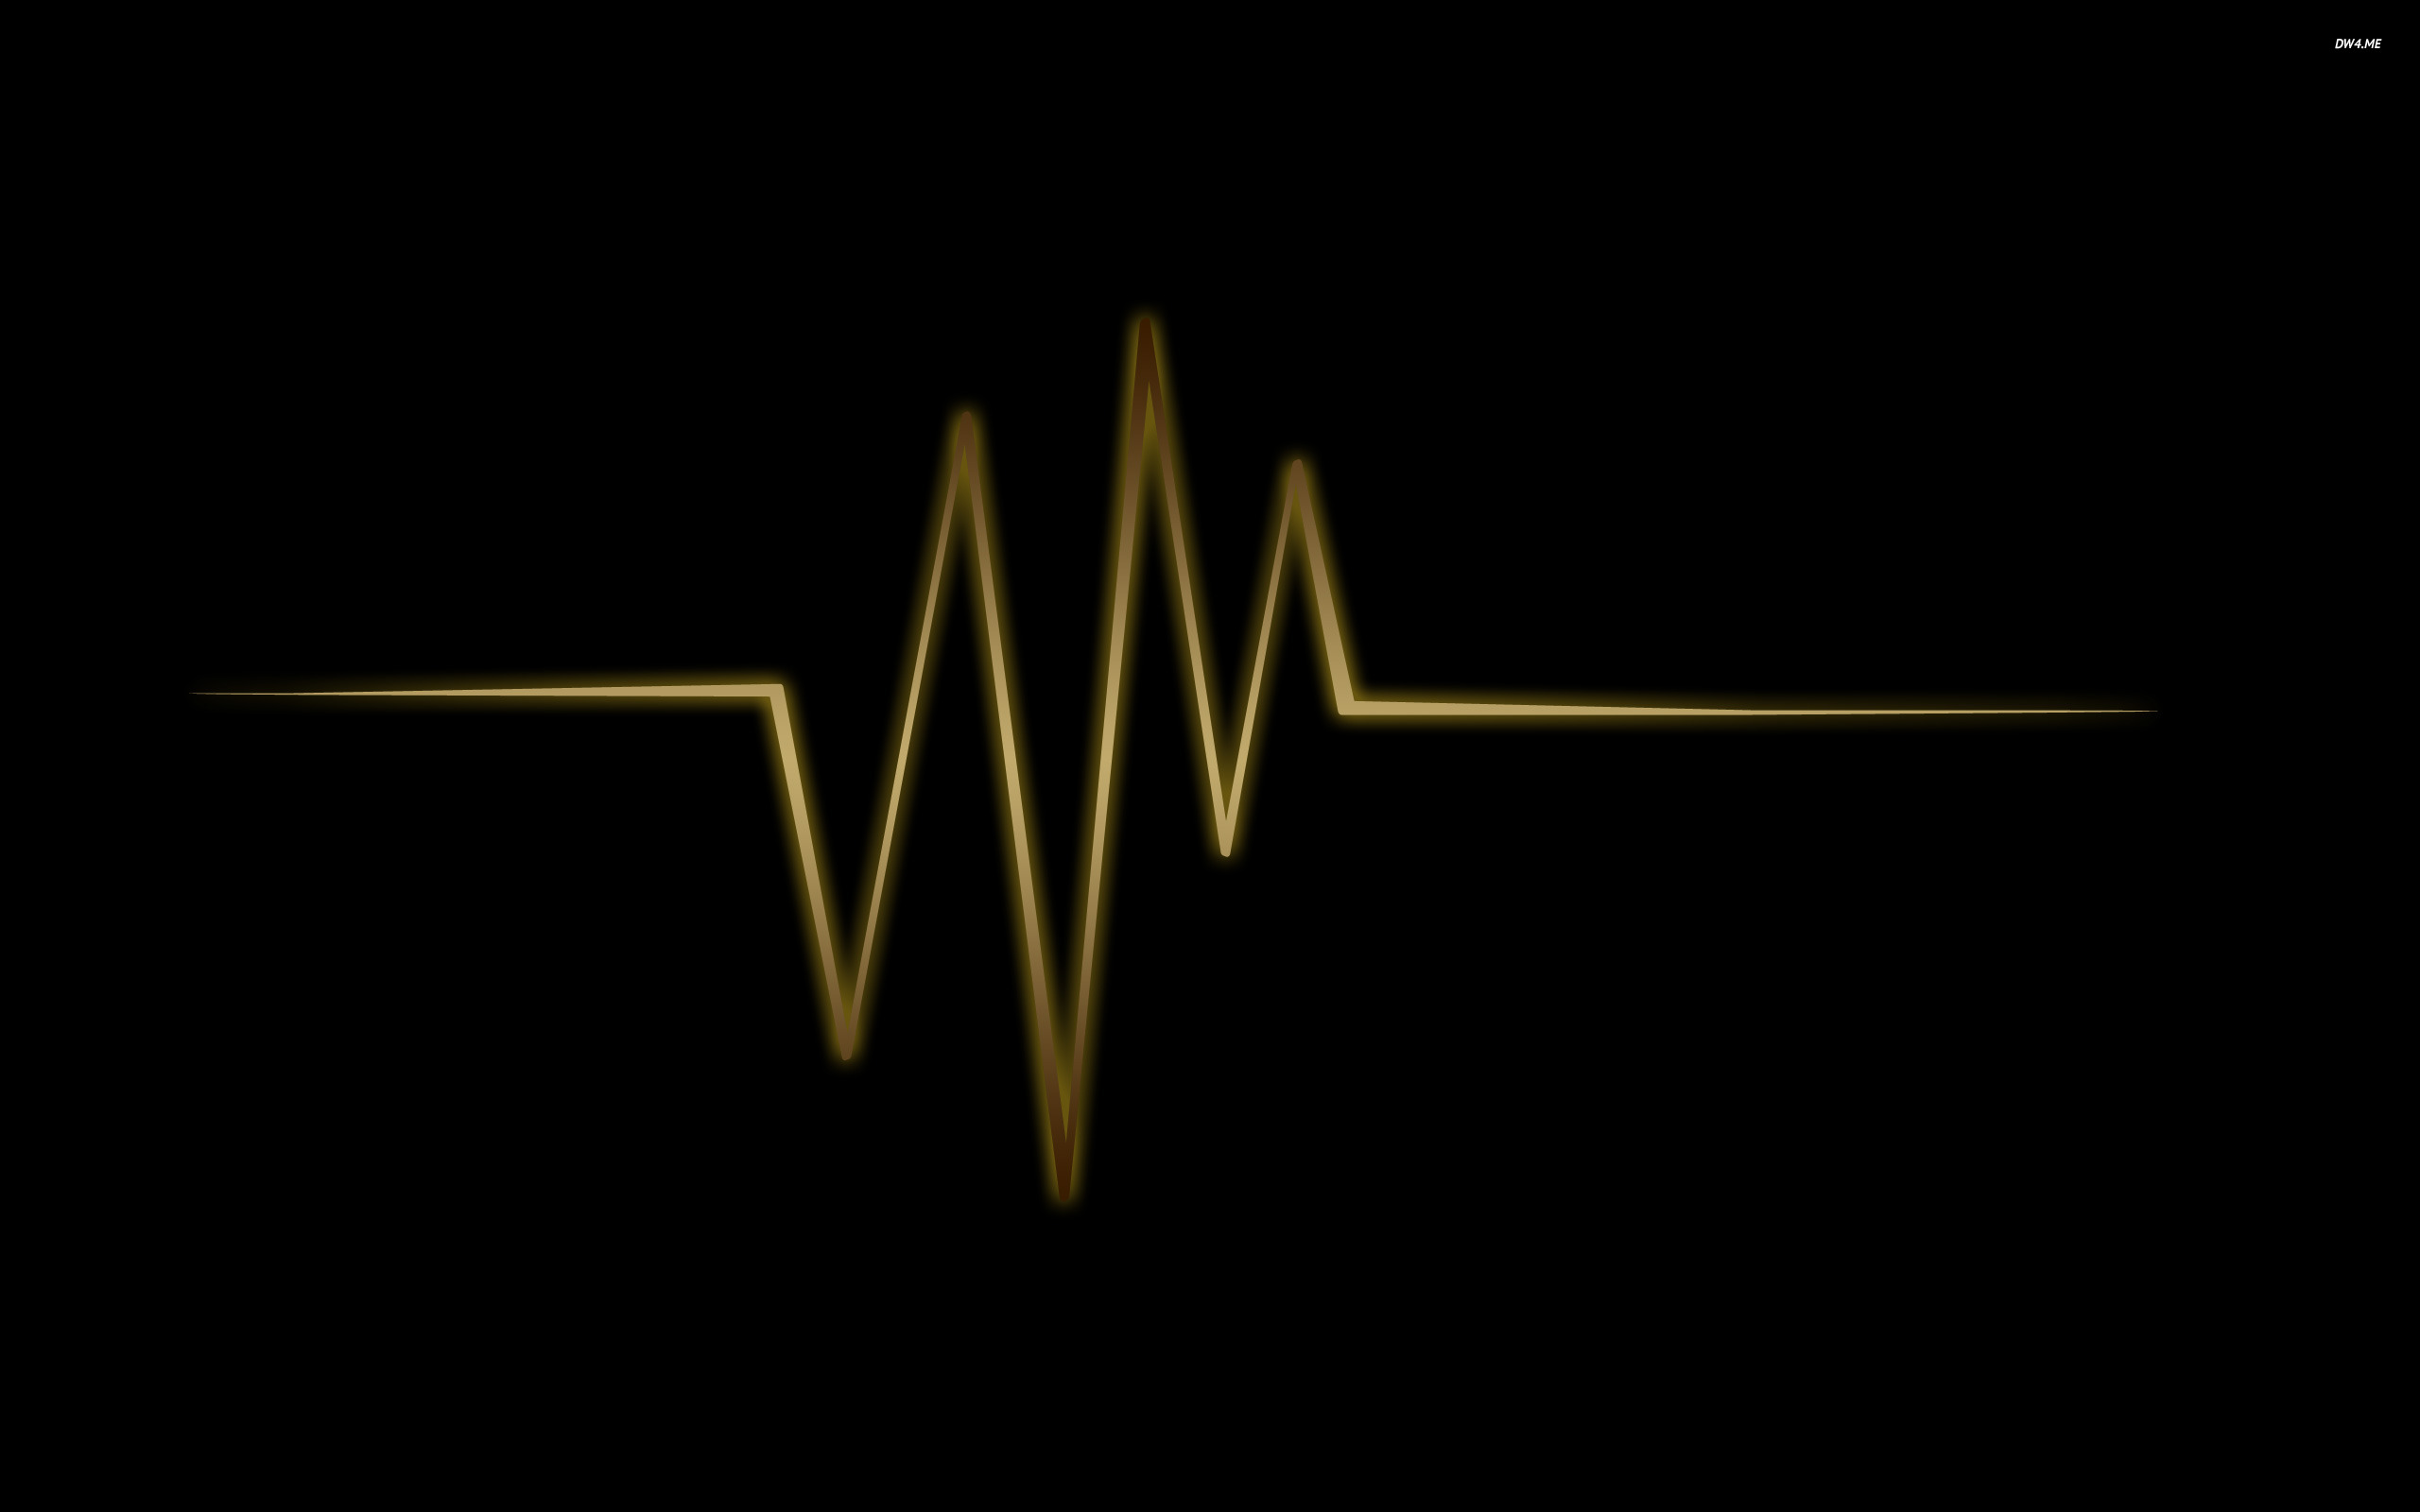 Free Download Heartbeat Wallpaper Abstract Wallpapers 506 2560x1600 For Your Desktop Mobile Tablet Explore 77 Heartbeat Wallpaper Heart Background Wallpaper Heart Wallpaper Images Heart Wallpapers For Desktop